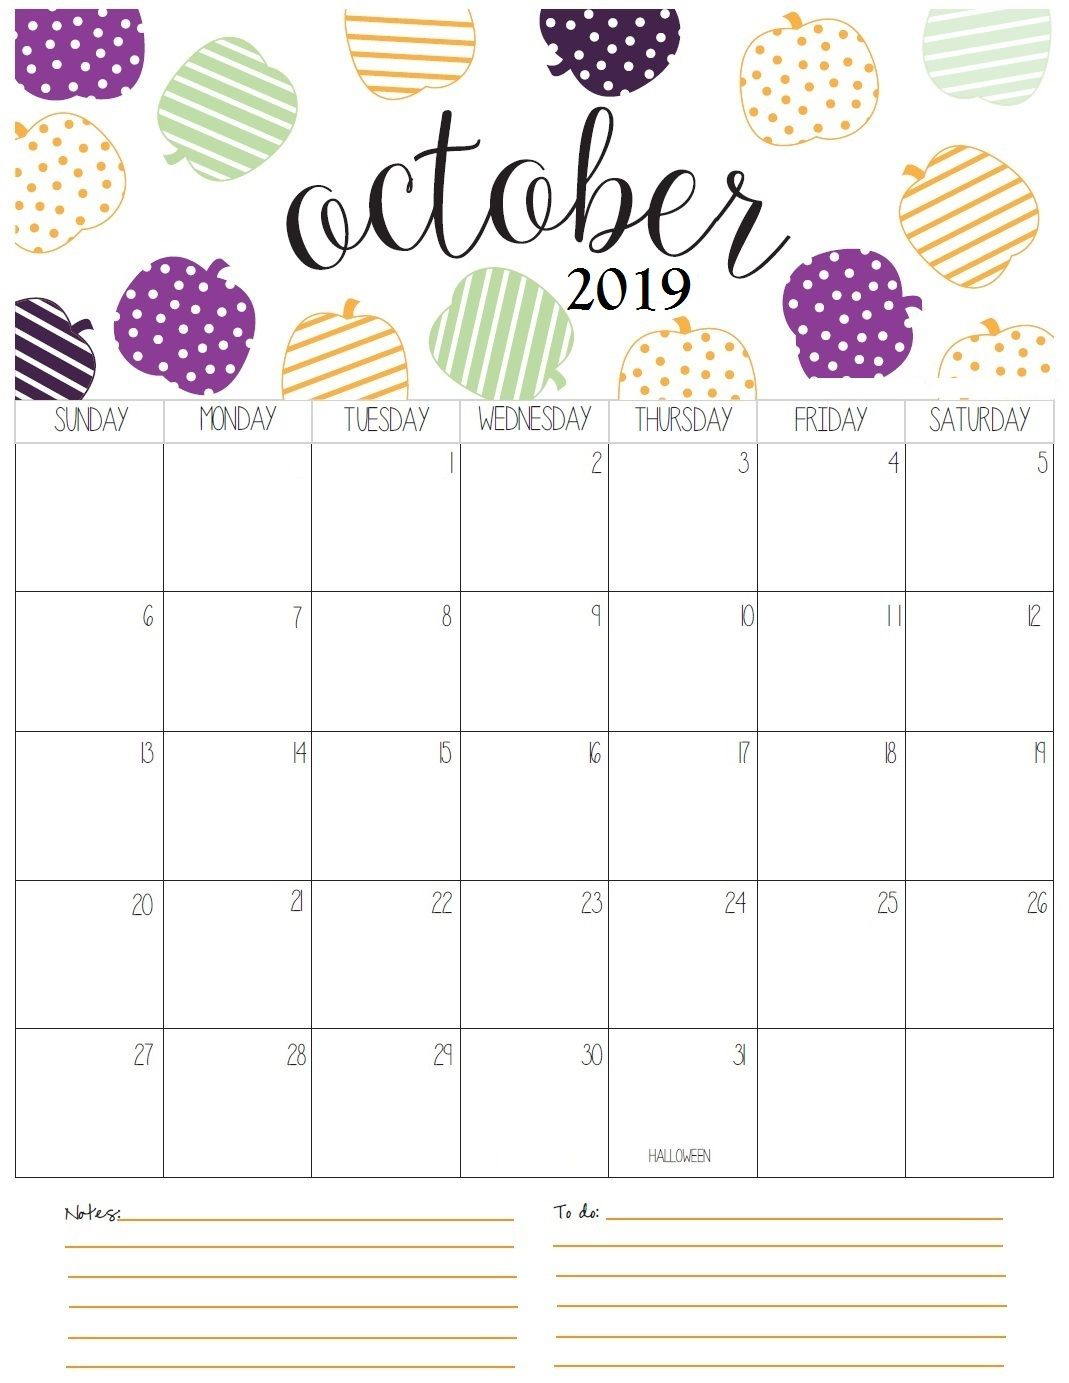 graphic about Free Printable Oct Calendar titled Oct Regular monthly Calendar 2019 planner Oct calendar